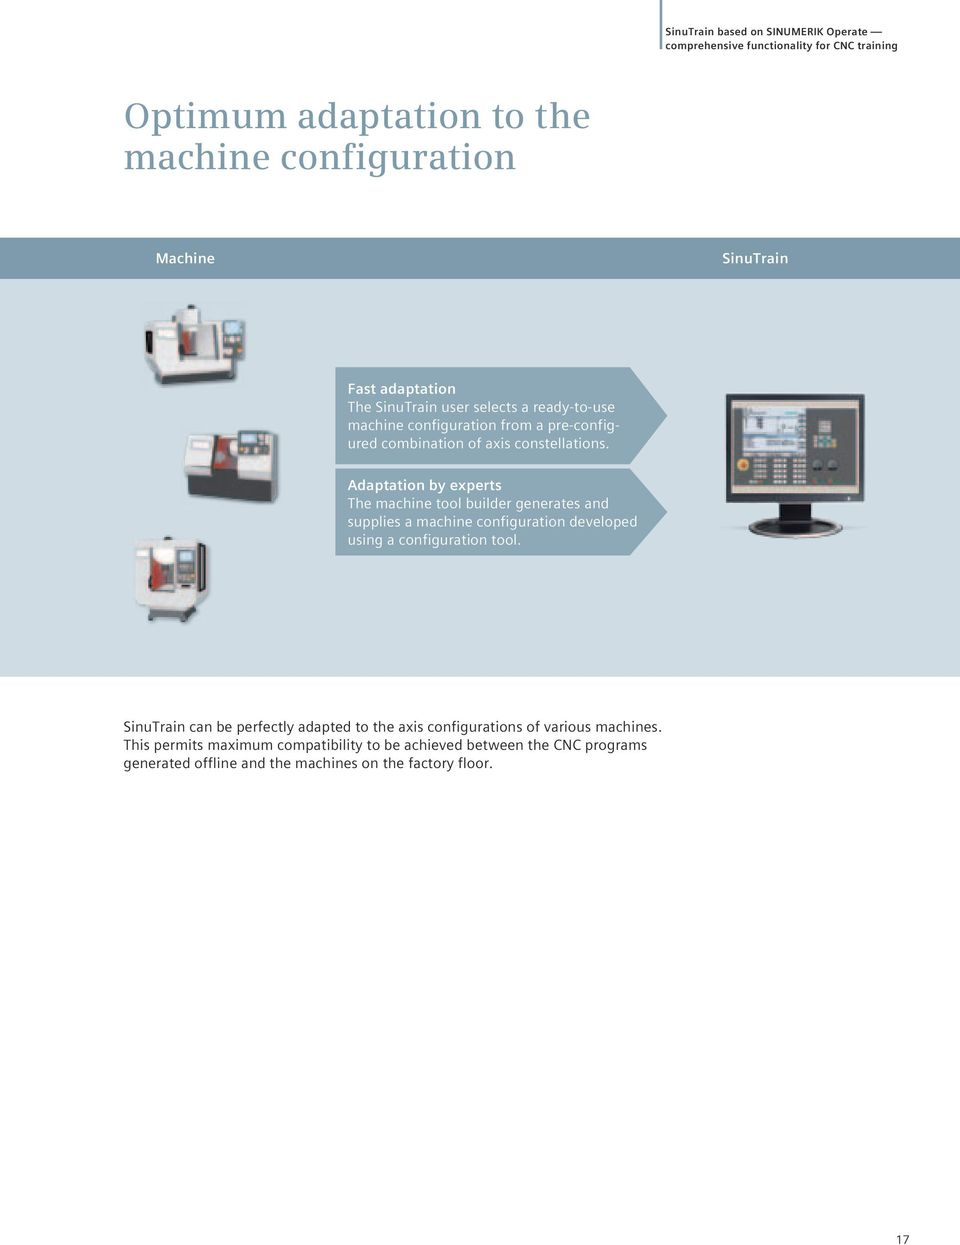 Adaptation by experts The machine tool builder generates and supplies a machine configuration developed using a configuration tool.